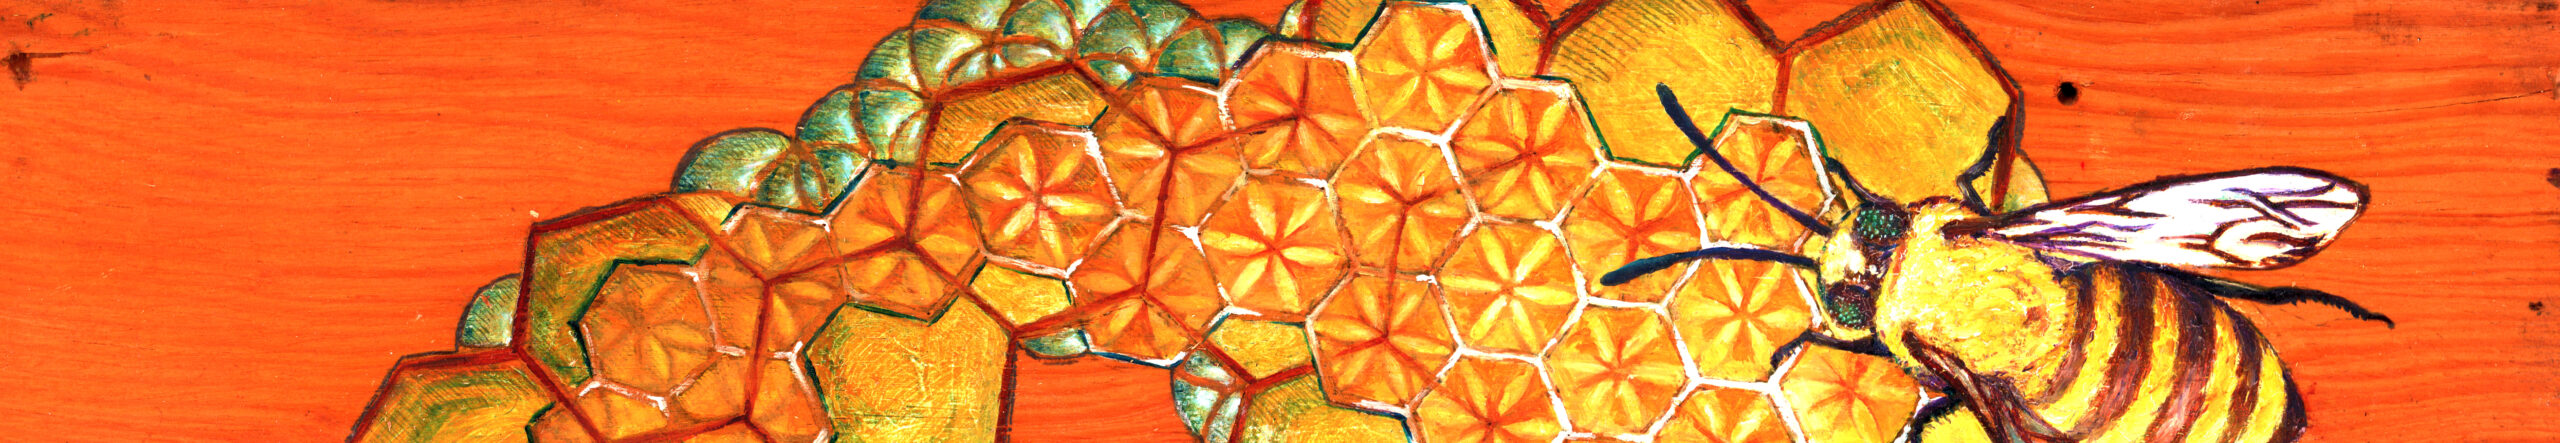 The image has a bee standing on top of a honeycomb. In the hexagons of the honeycomb you can see the seed of life which forms and also deconstructs the pattern of hexagons.